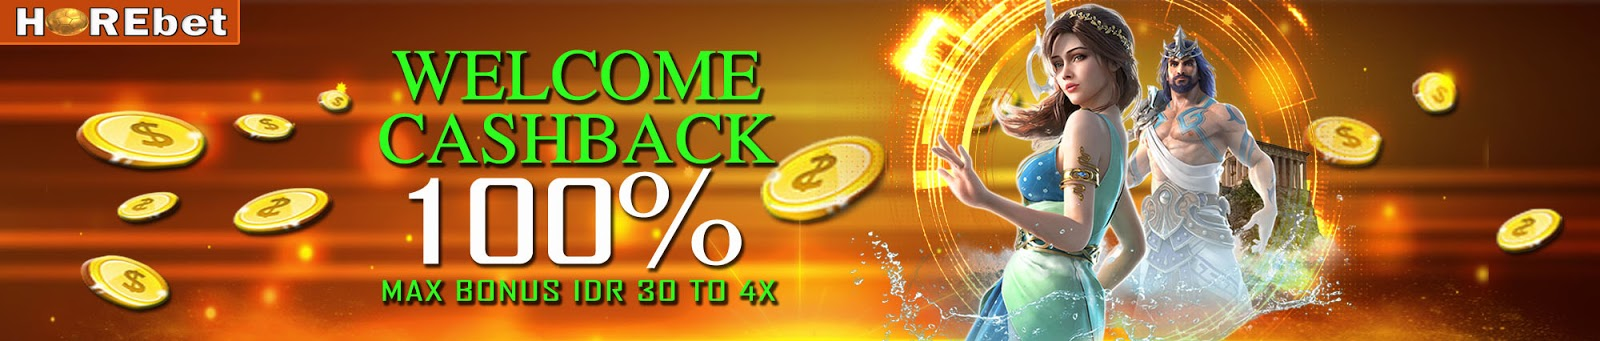 Welcome Cashback 100 Wcb Horebet March 2020